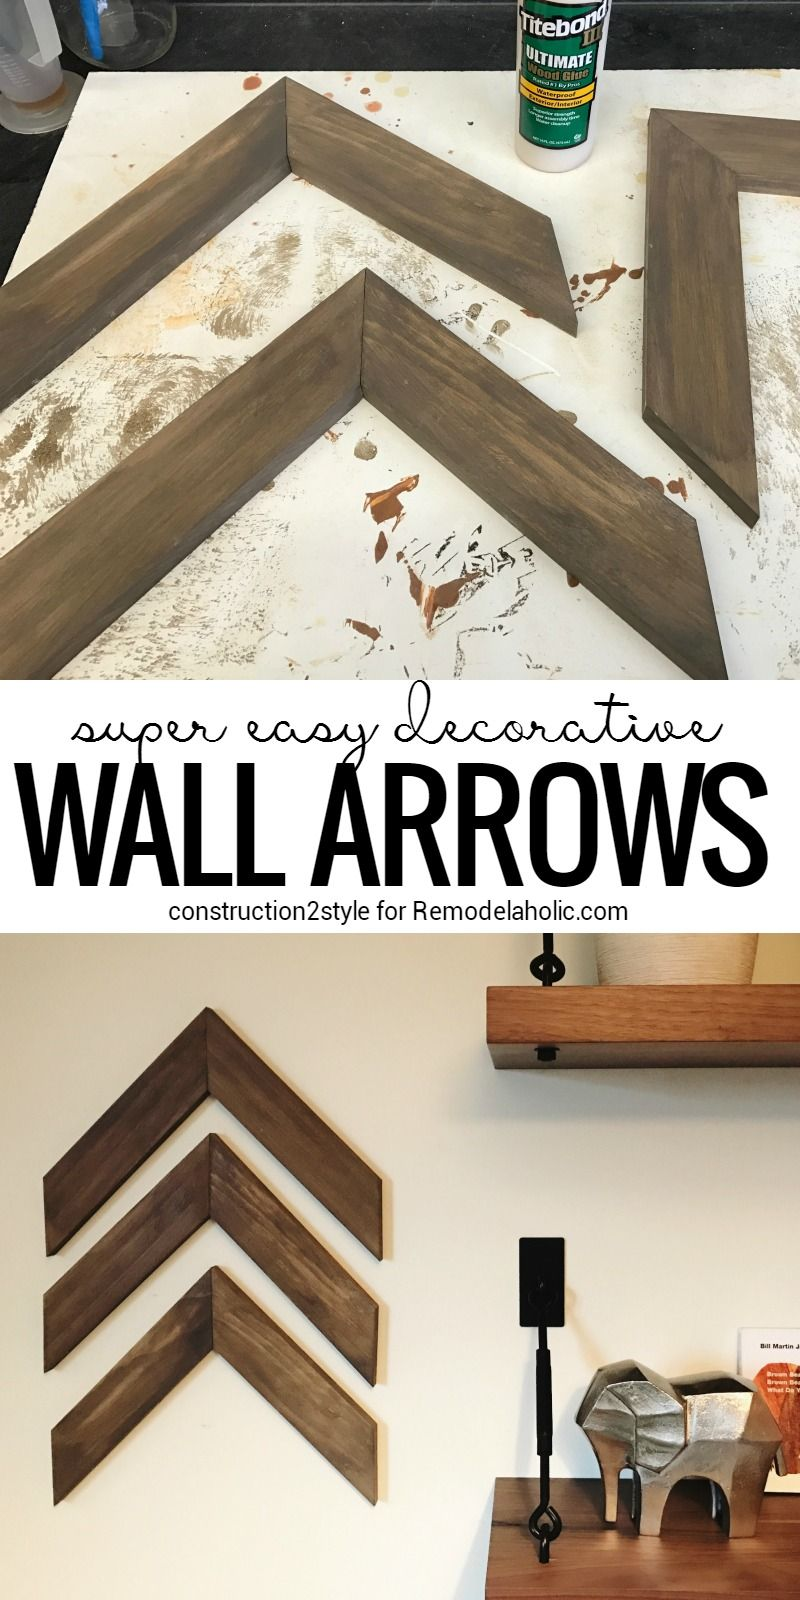 Put your scrap pile to work as wall decor with this easy diy put your scrap pile to work as wall decor with this easy diy wooden arrow tutorial amipublicfo Gallery